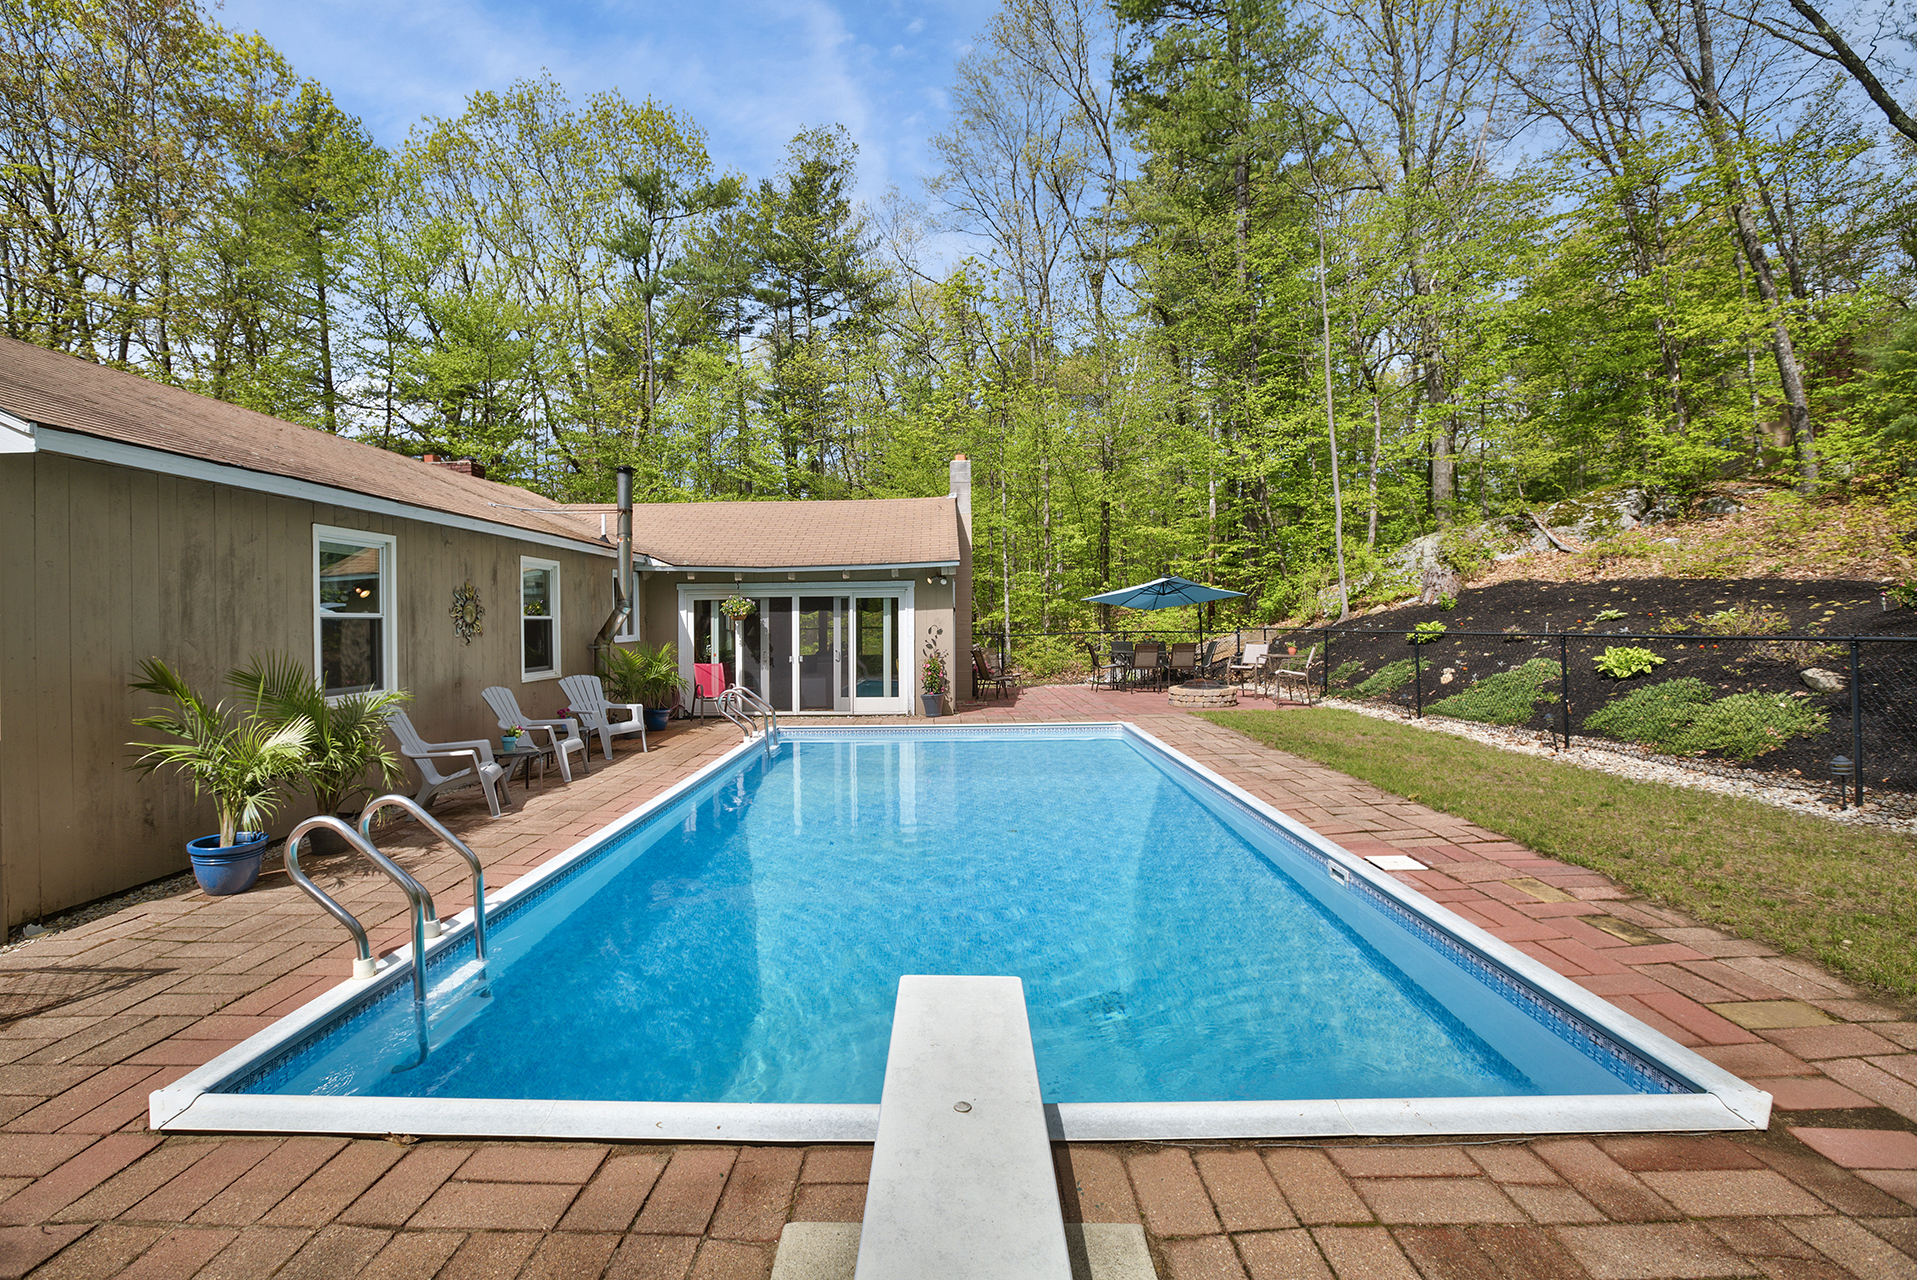 96 wash pond rd hampstead nh hubcam full service real estate marketing assets for Swimming pool center hampstead nh